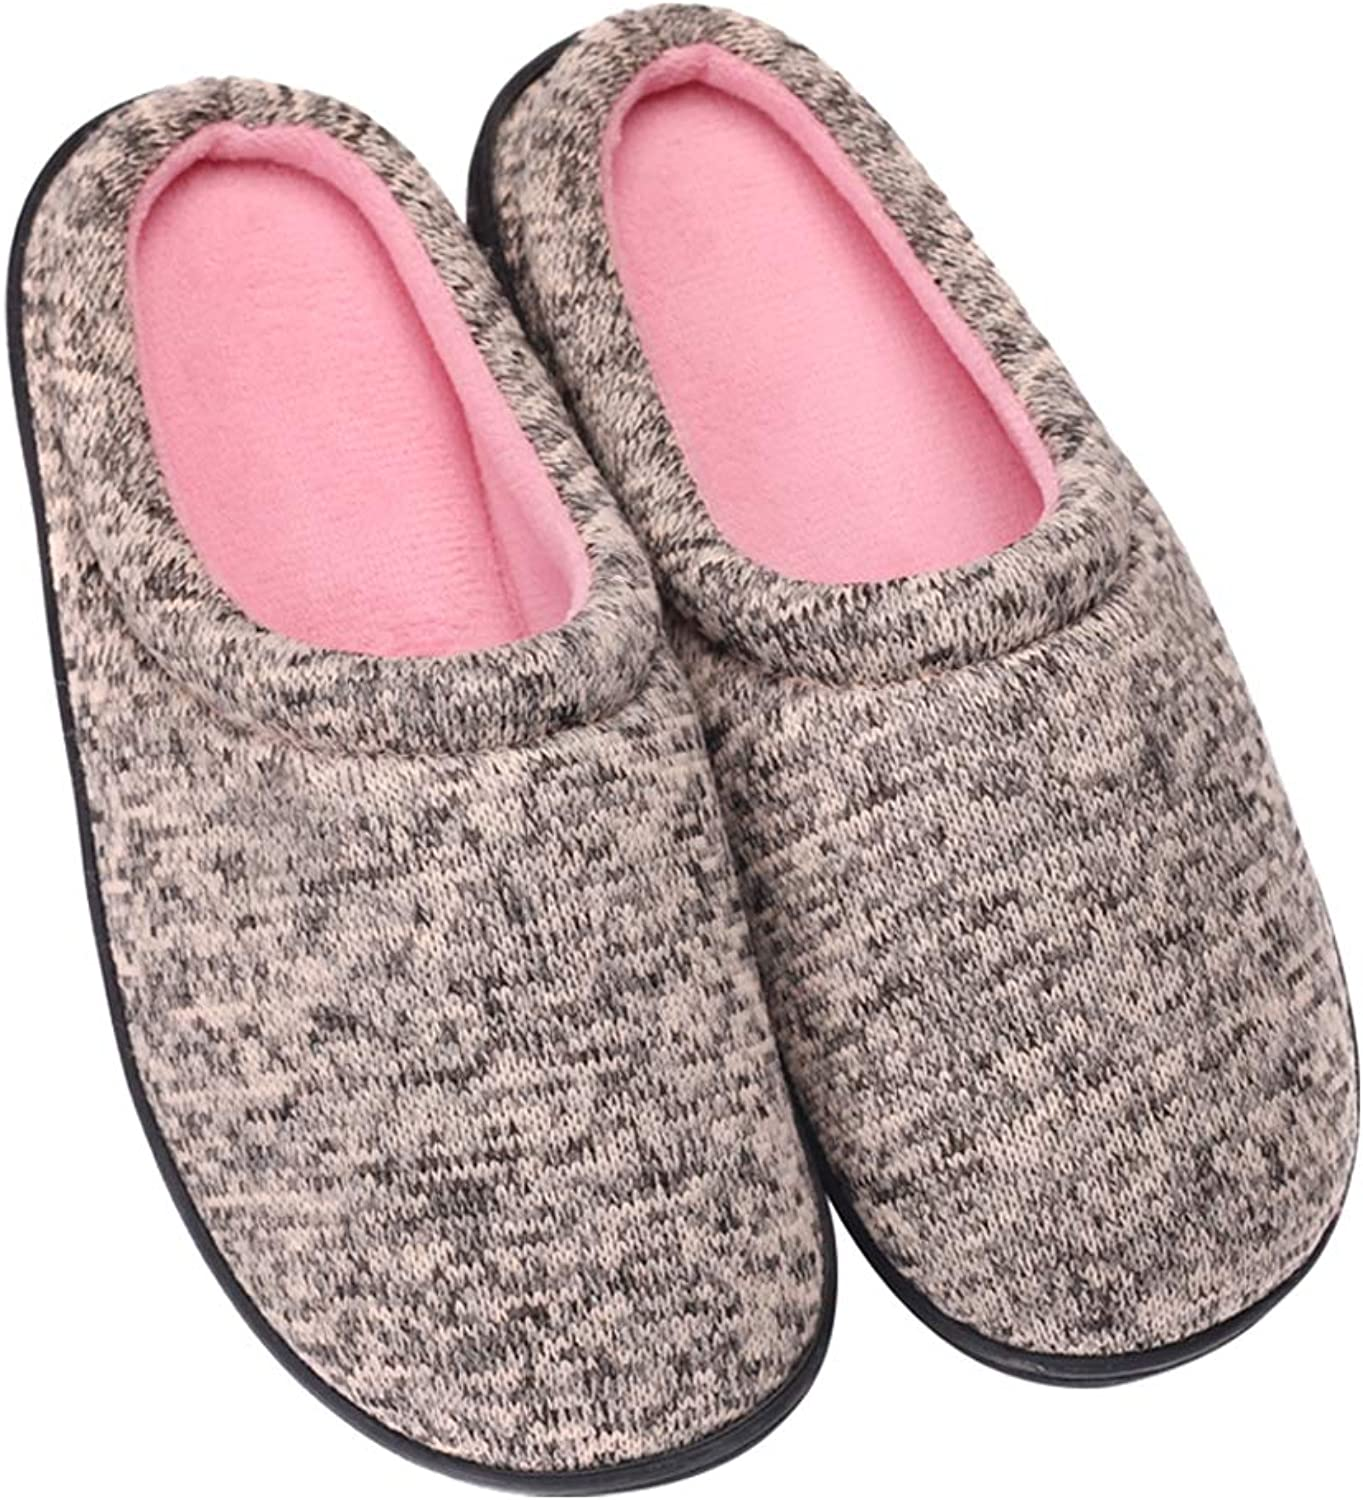 Beatific Bee Women's House Slippers Slip-on Knitted Upper Coral Fleece Lining Home shoes